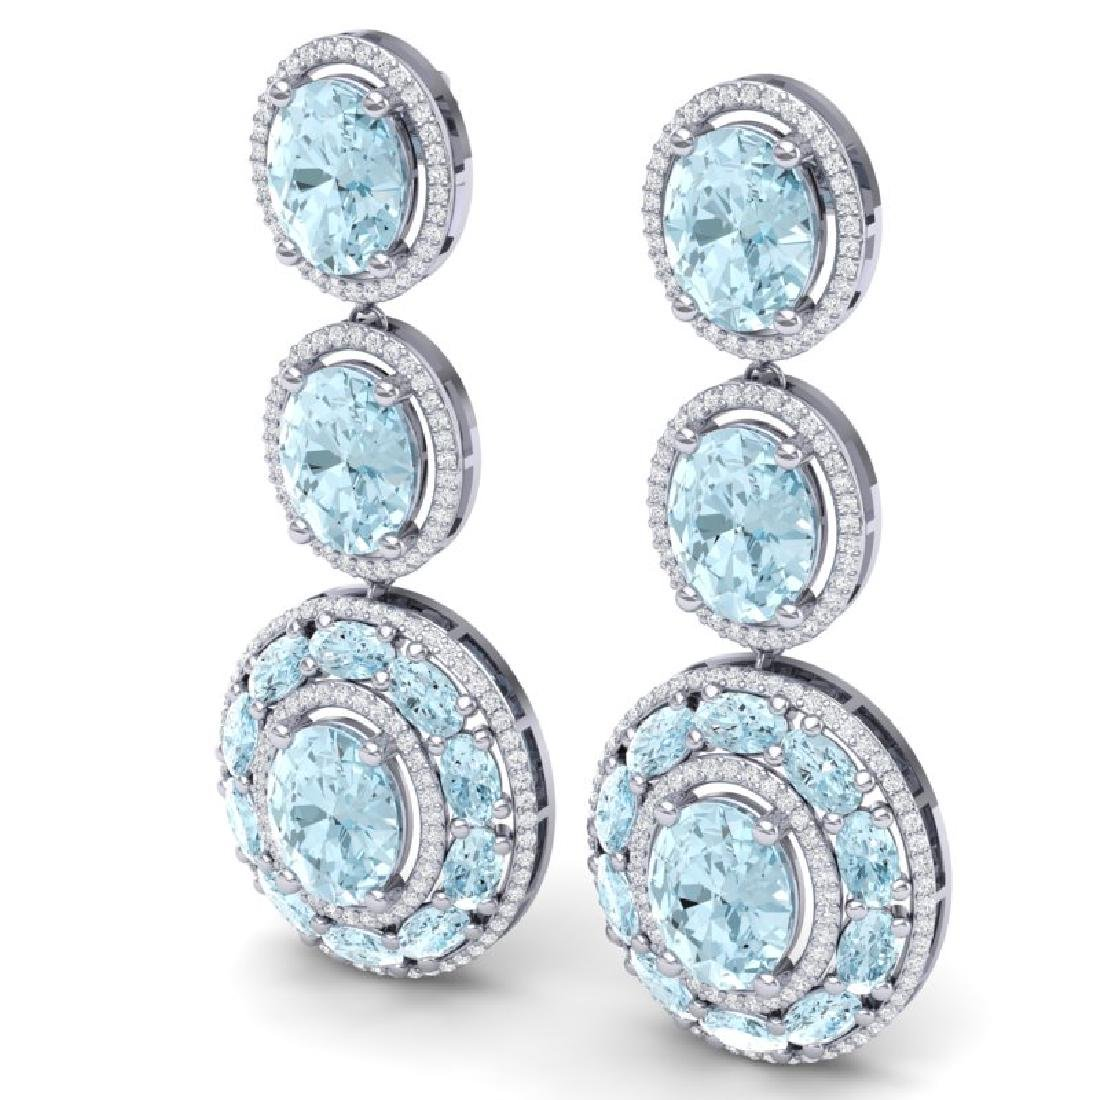 34.52 CTW Royalty Sky Topaz & VS Diamond Earrings 18K - 2